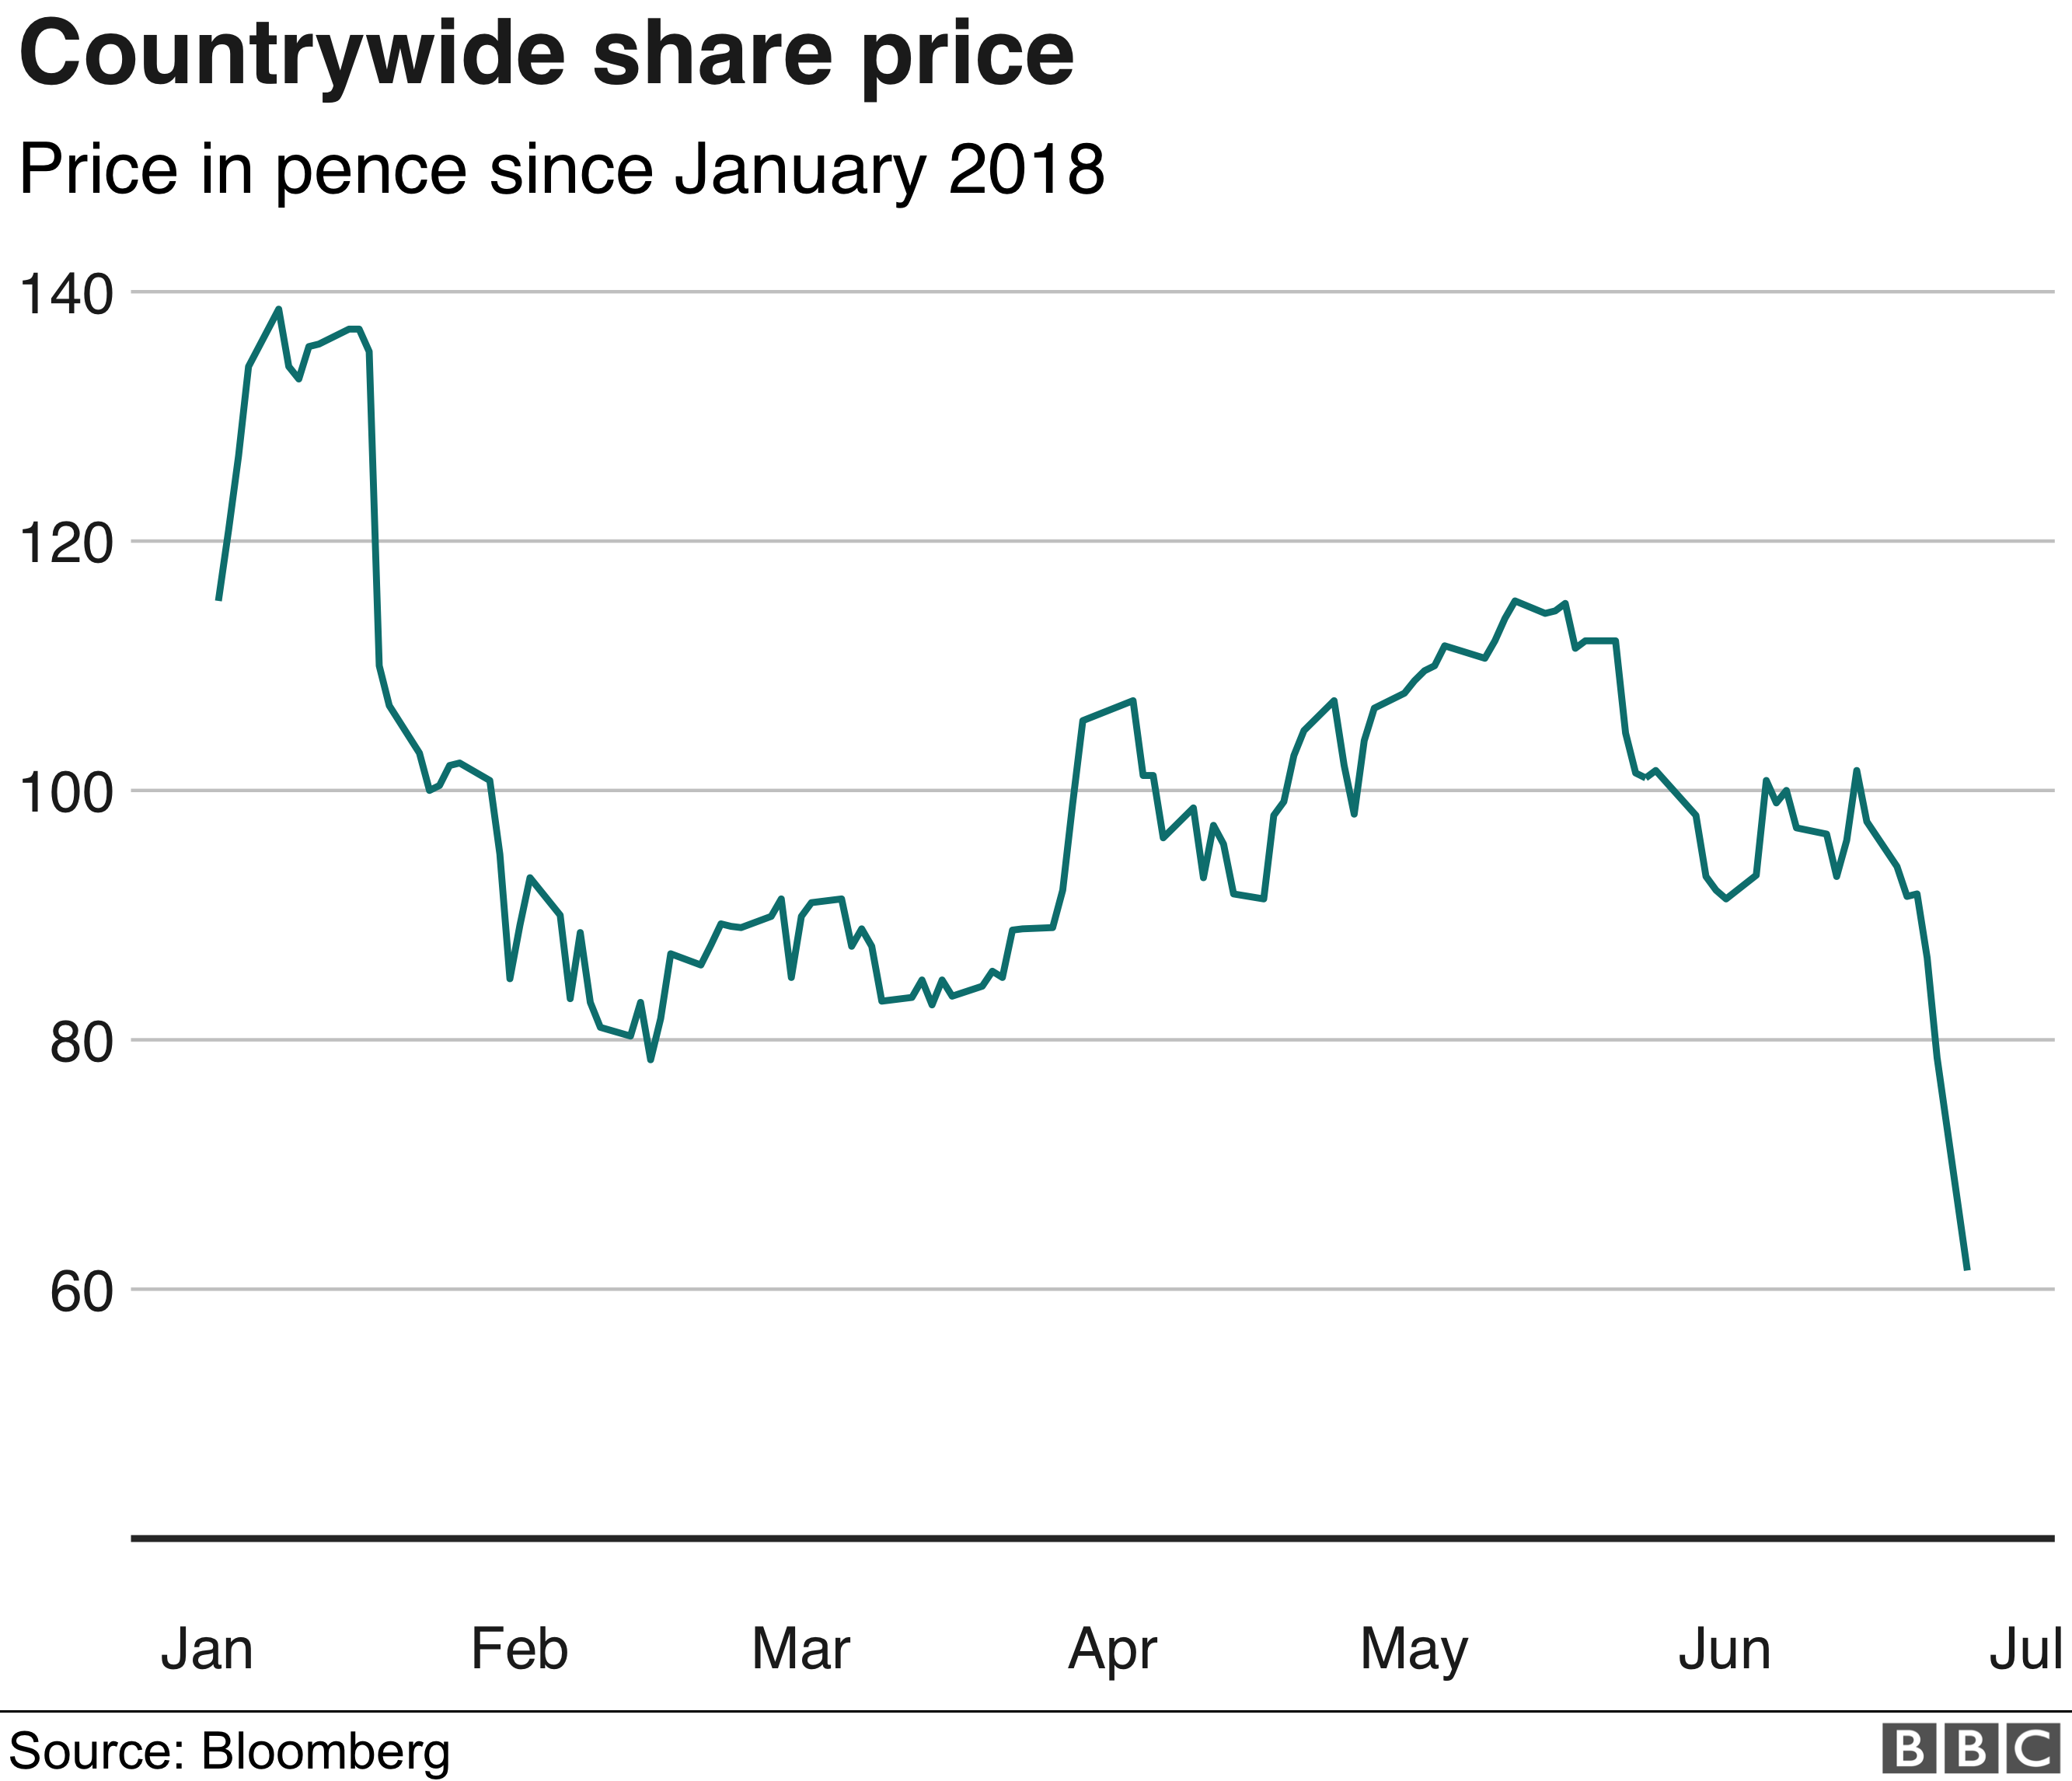 Countrywide share price